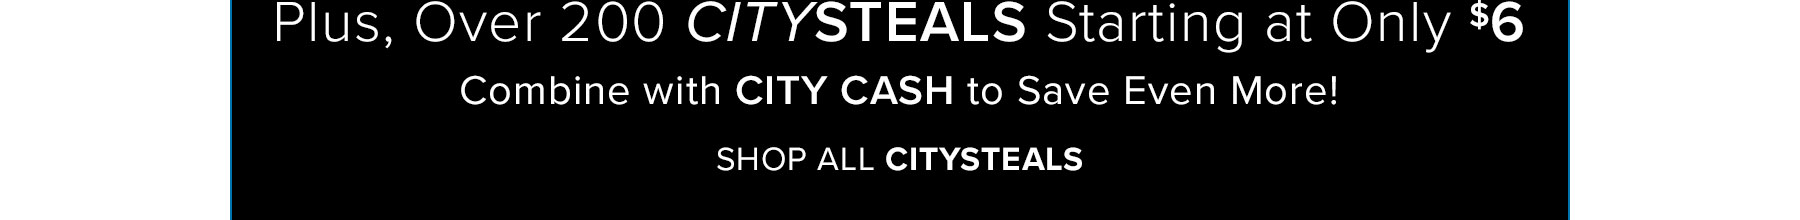 Shop CitySteals